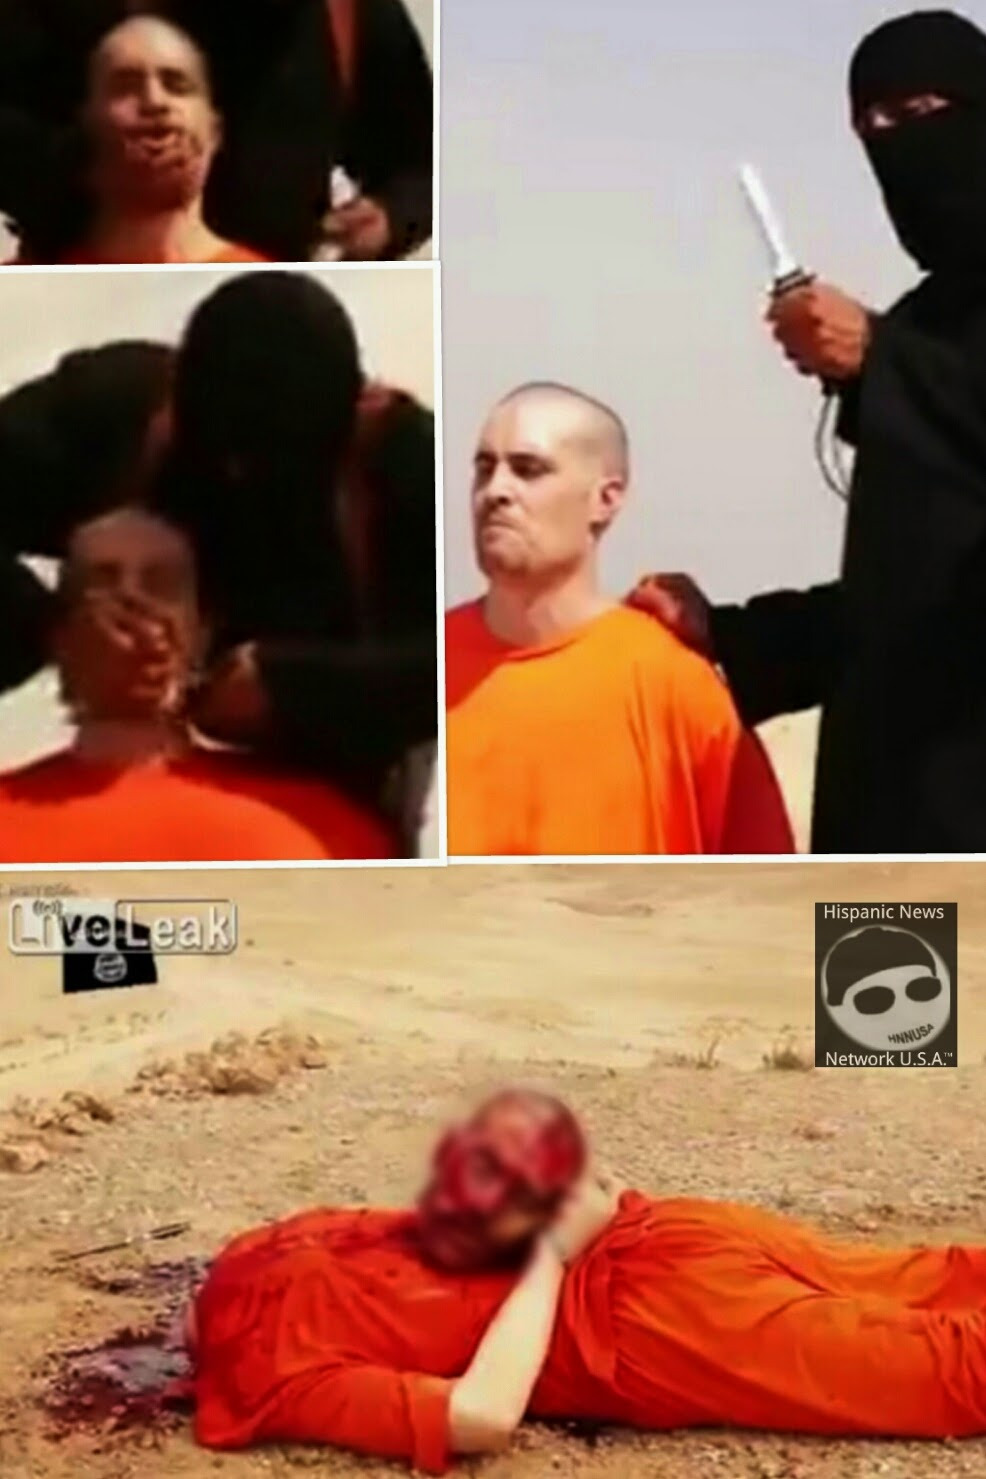 Isis Beheads James Wright Foley, Globalpost Reporter Who Went Missing